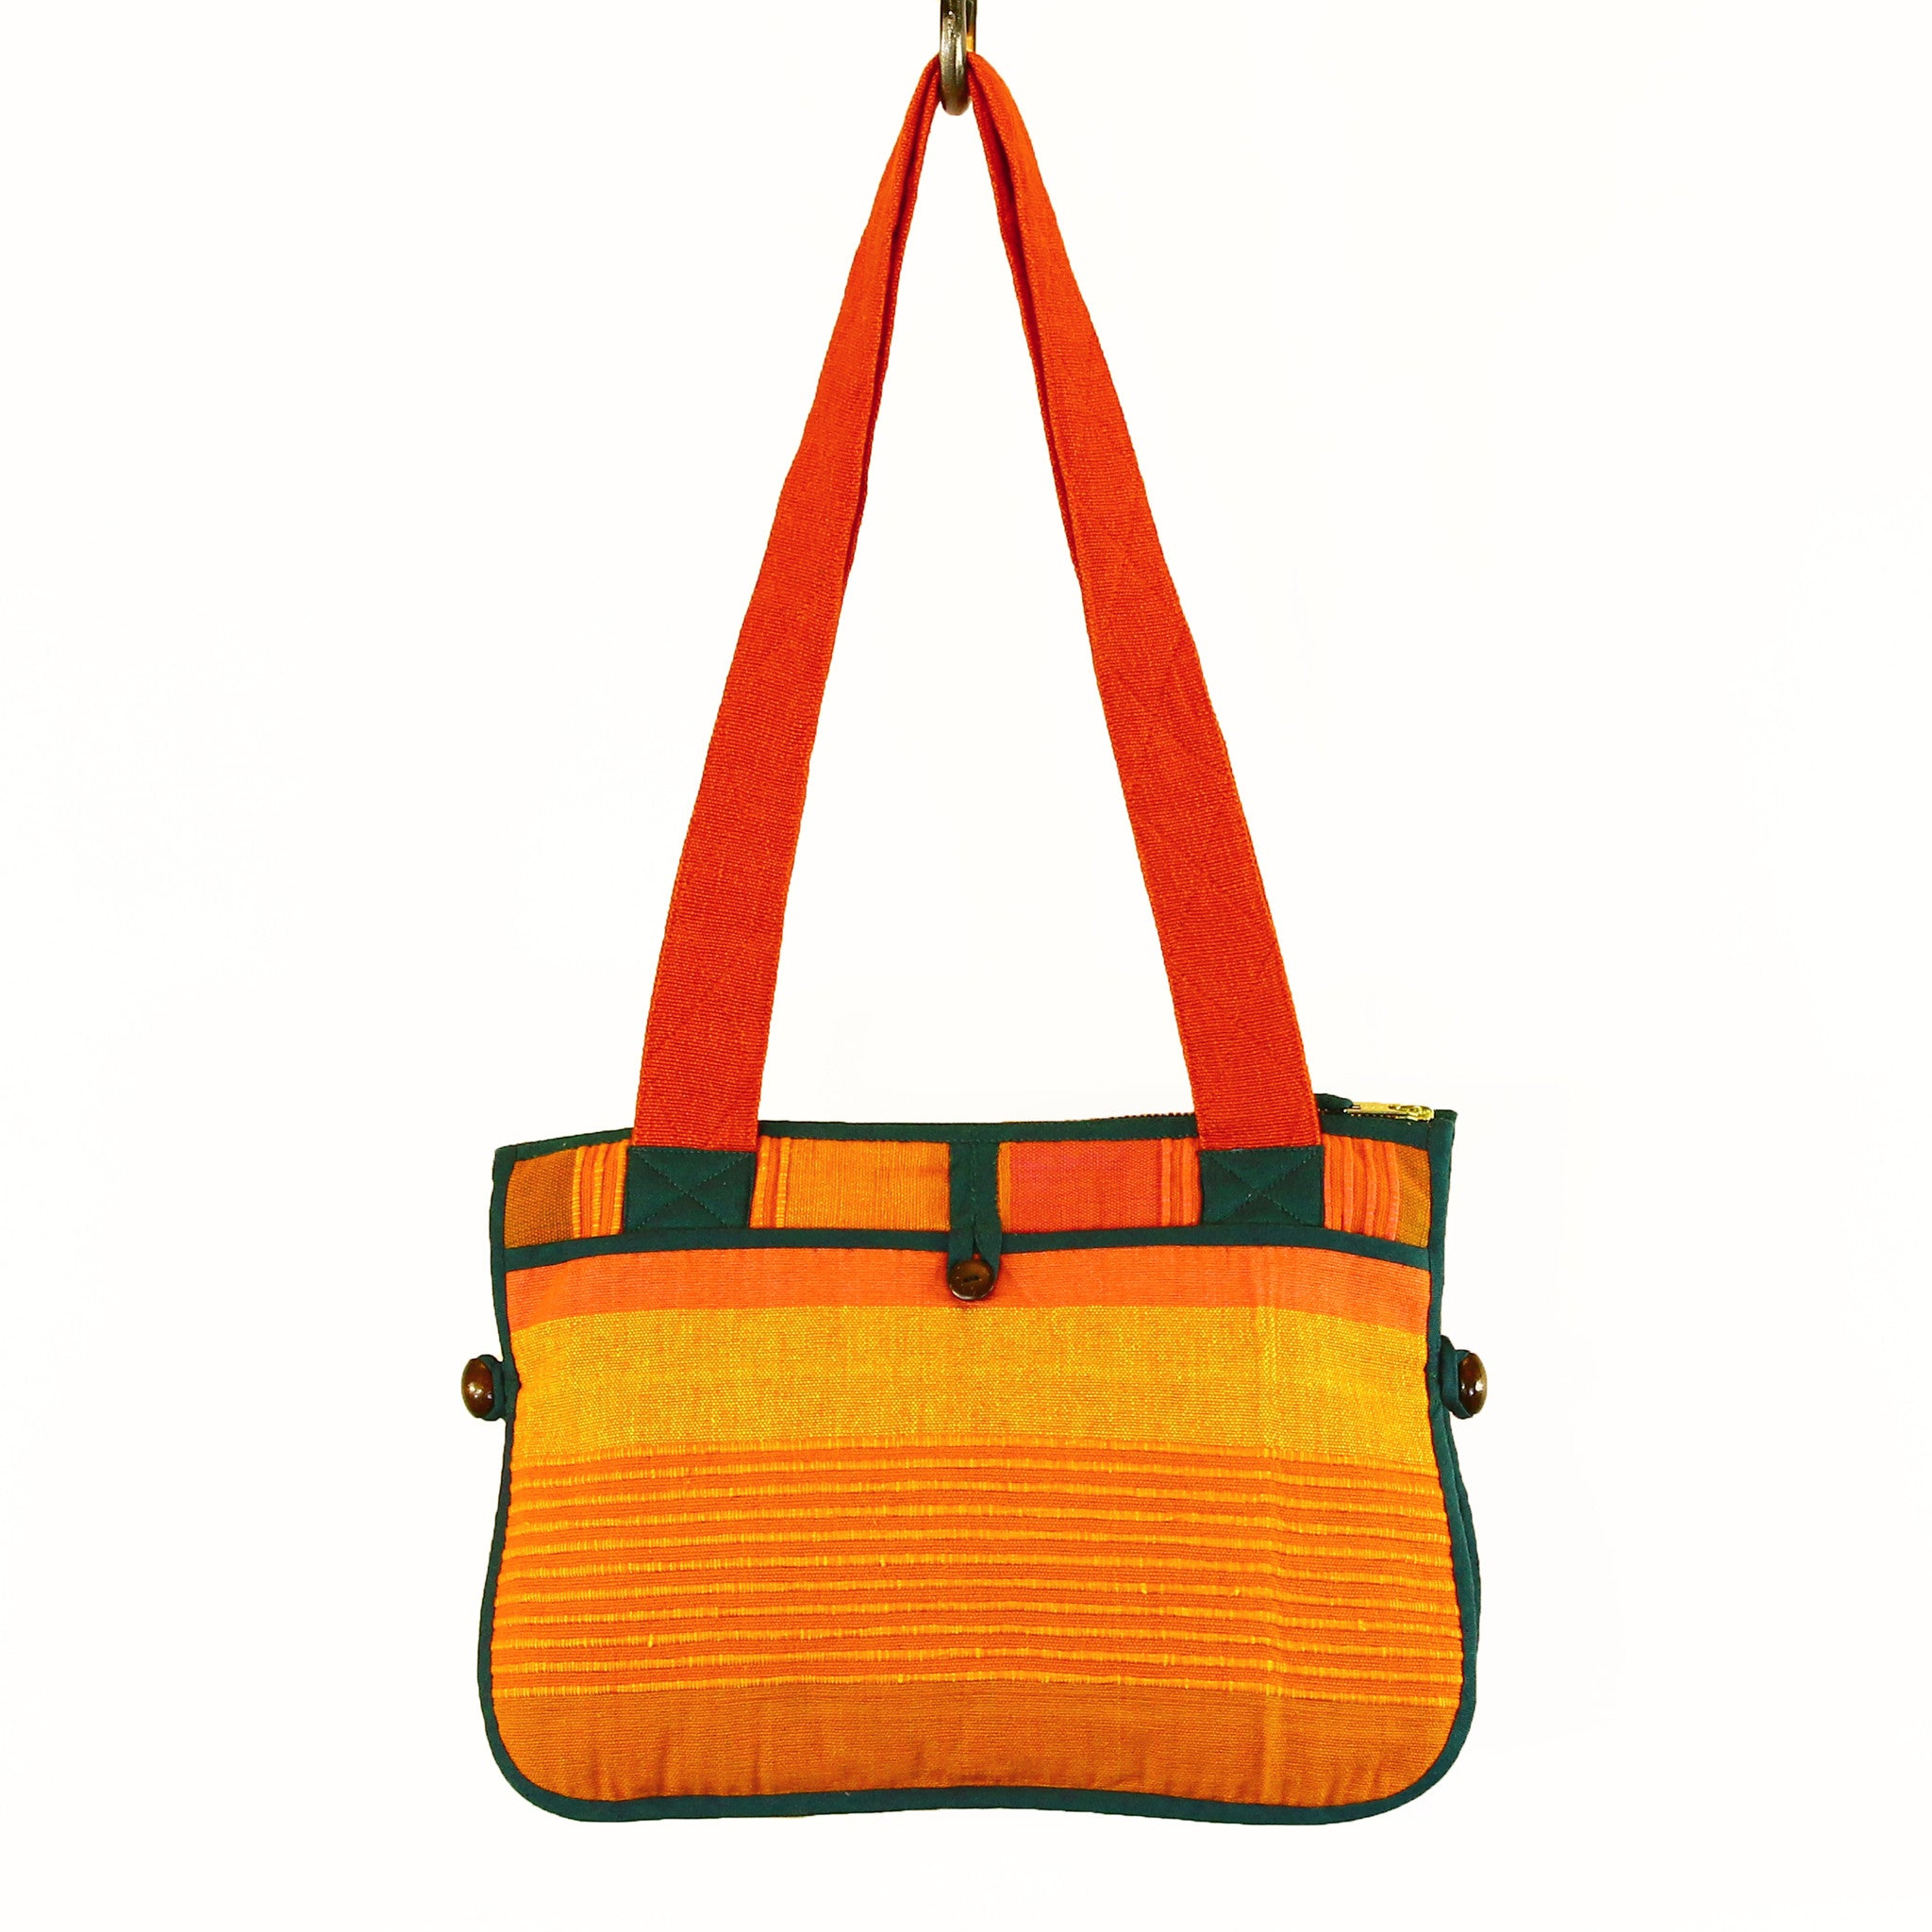 Barefoot Handwoven Expandable Shoulder Bag - Sunset fabric shown